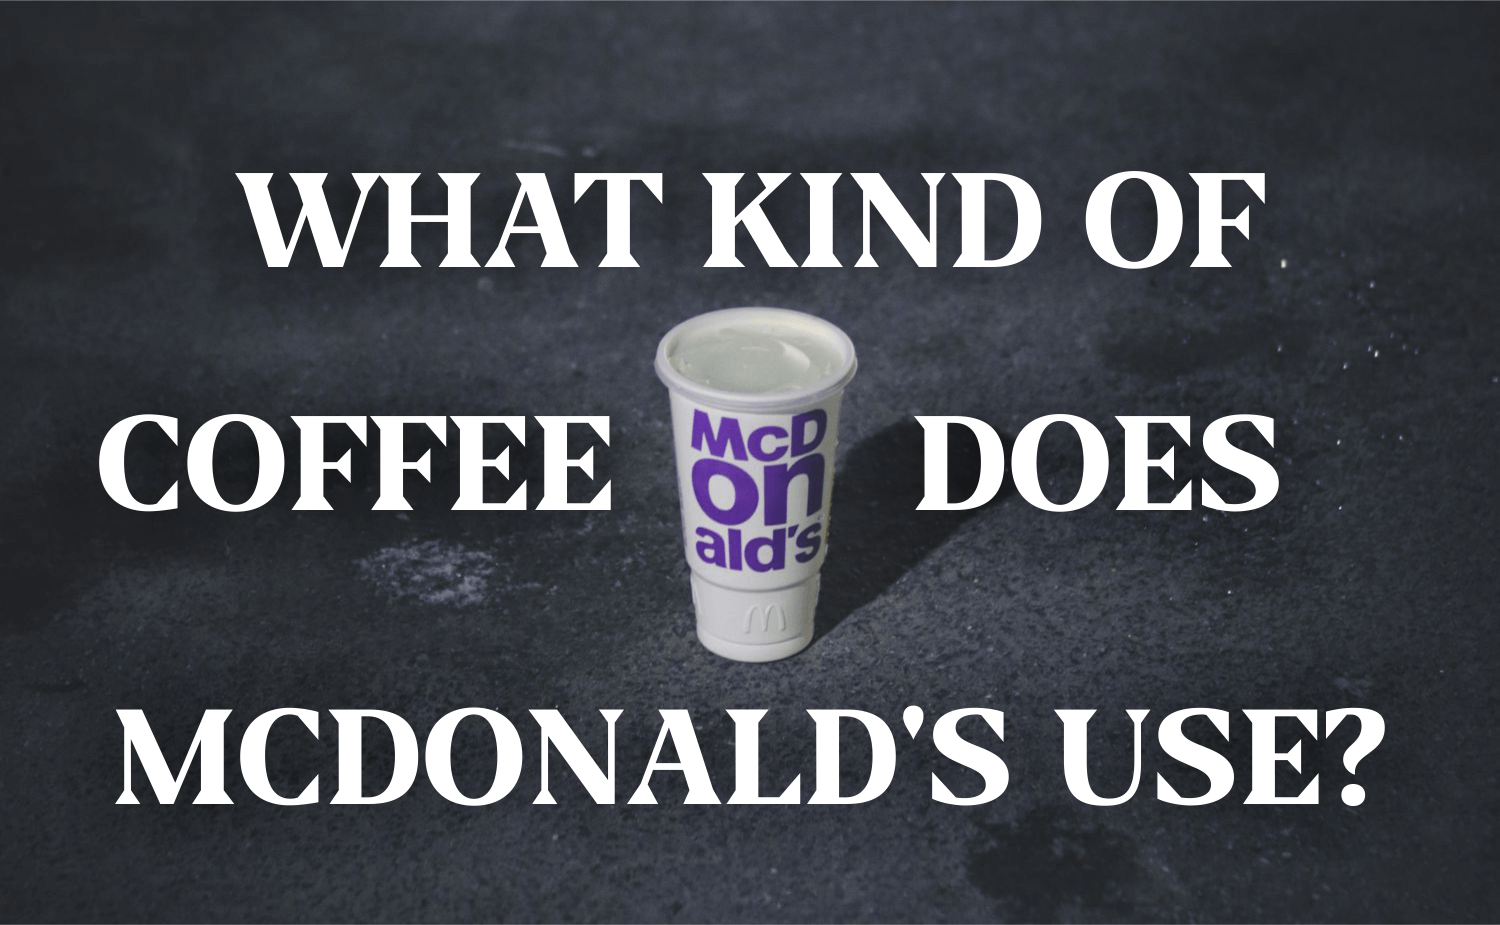 What Kind of Coffee Does McDonald's Use?